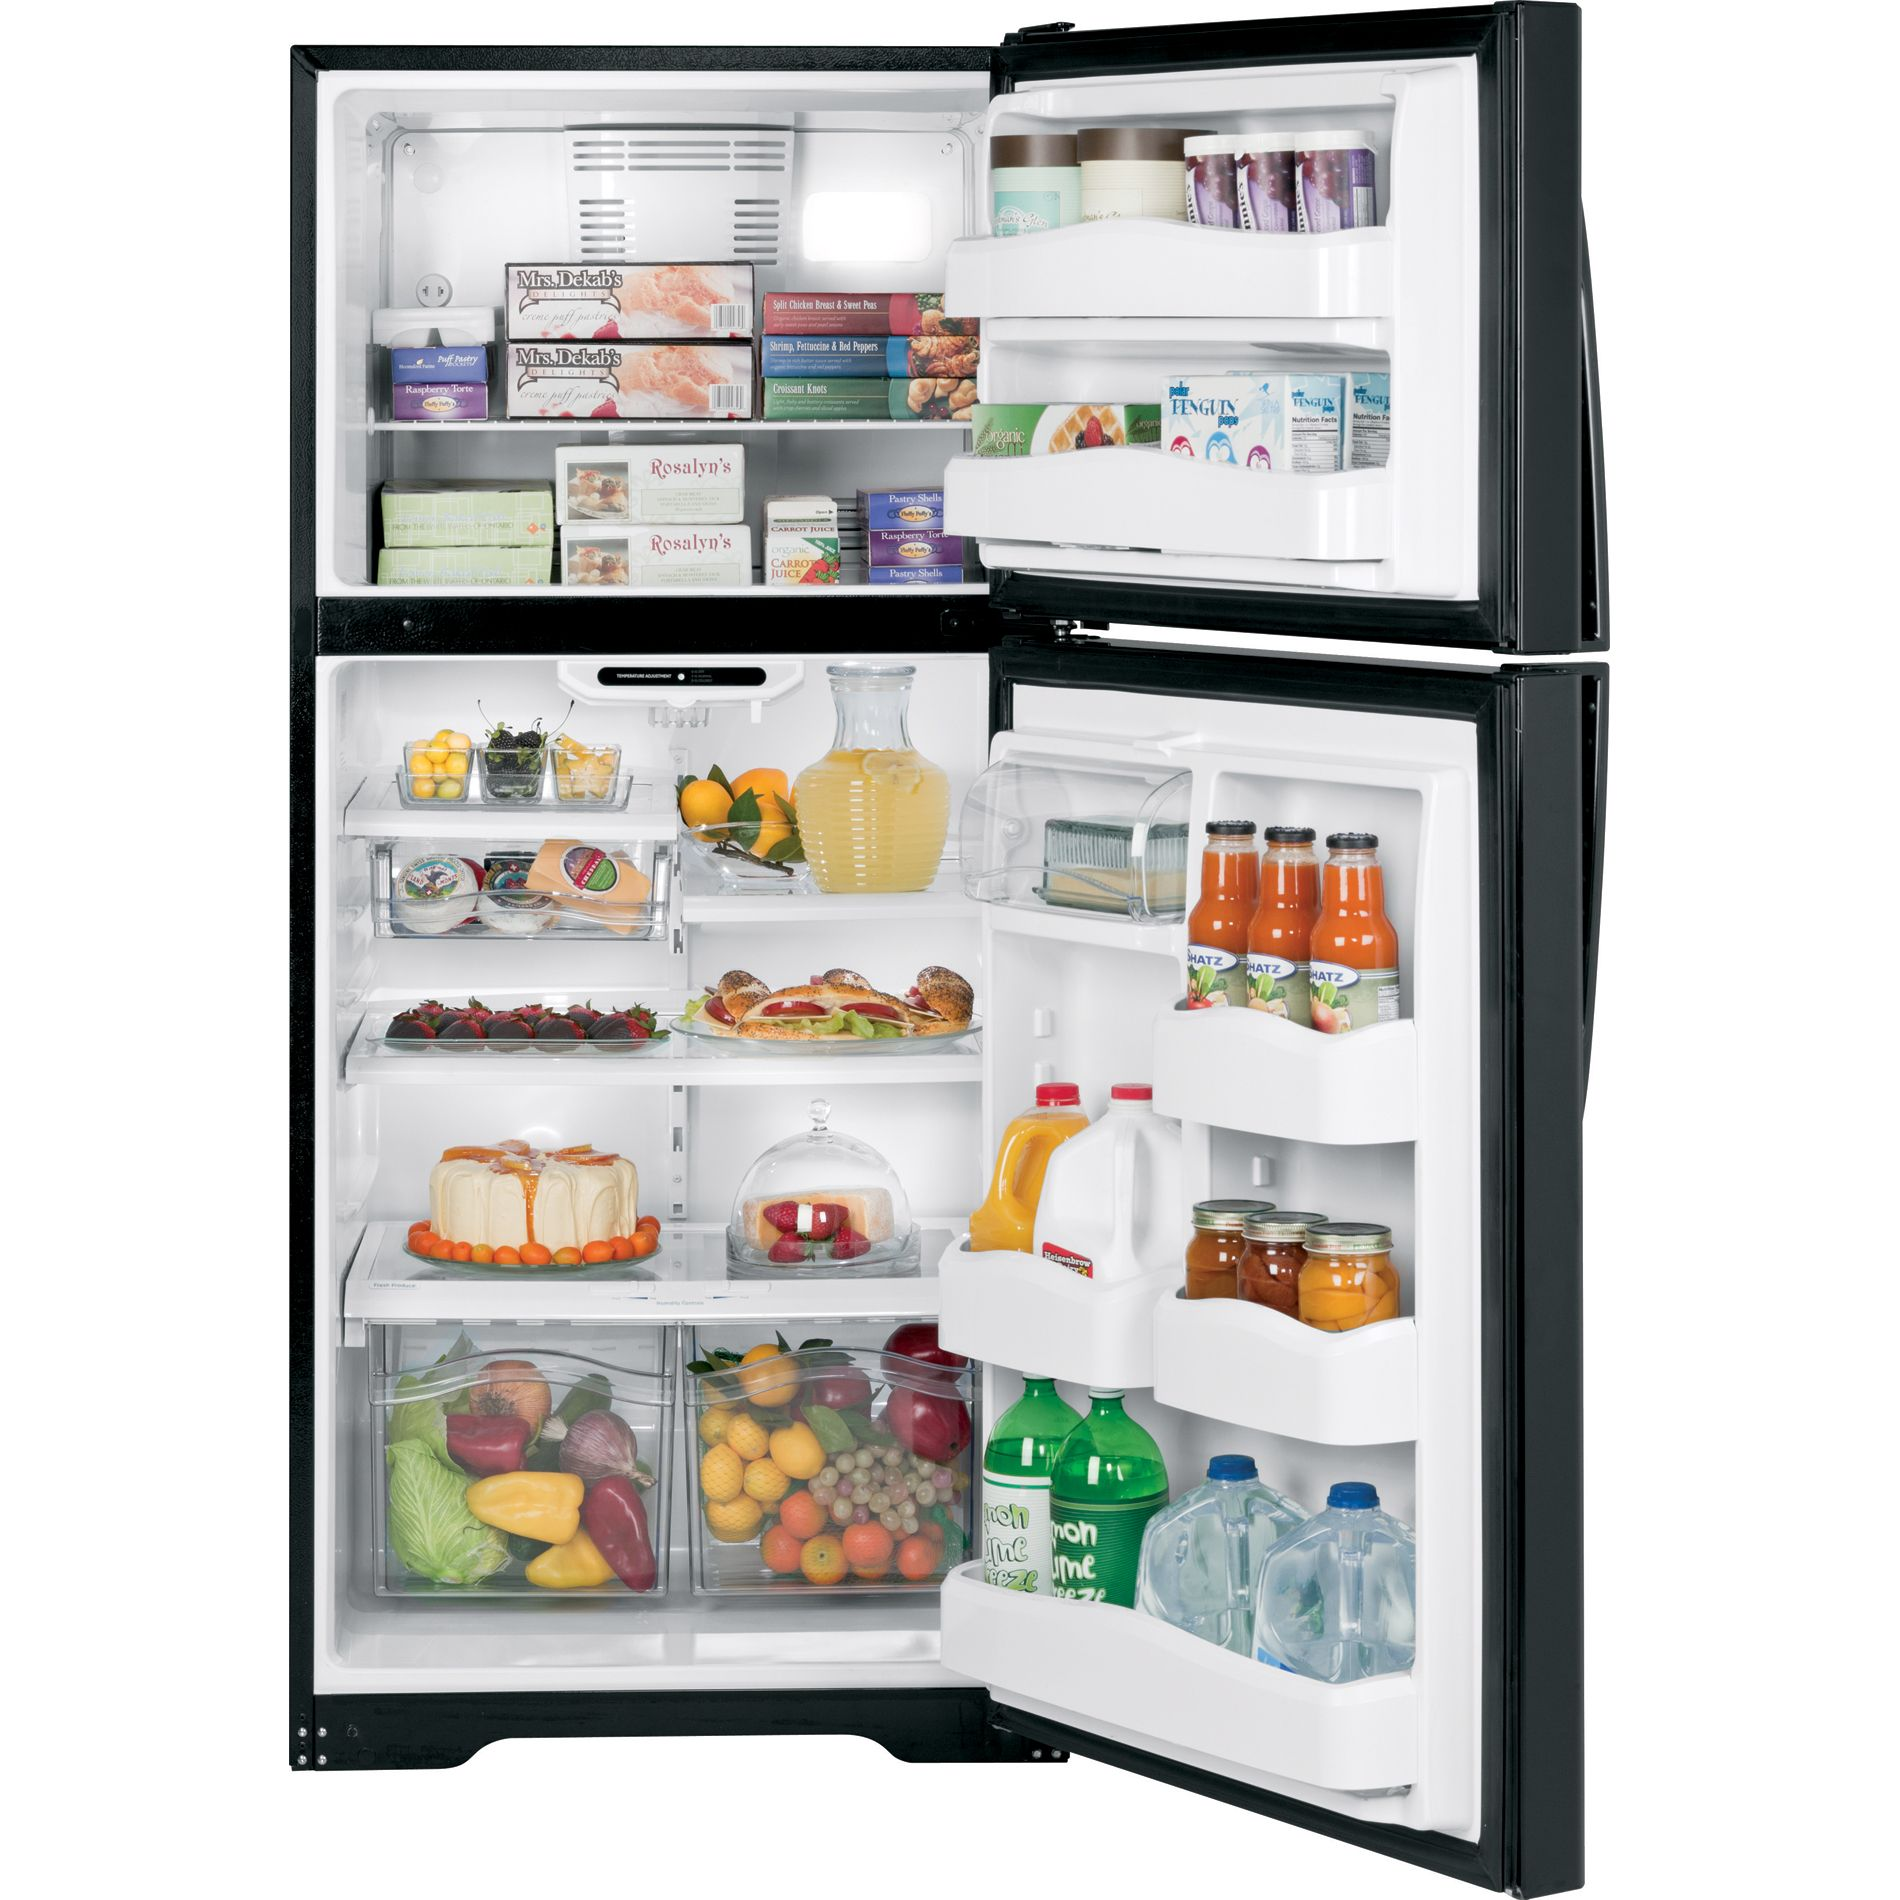 GE 20.0 cu. ft. Top Freezer Refrigerator - Black